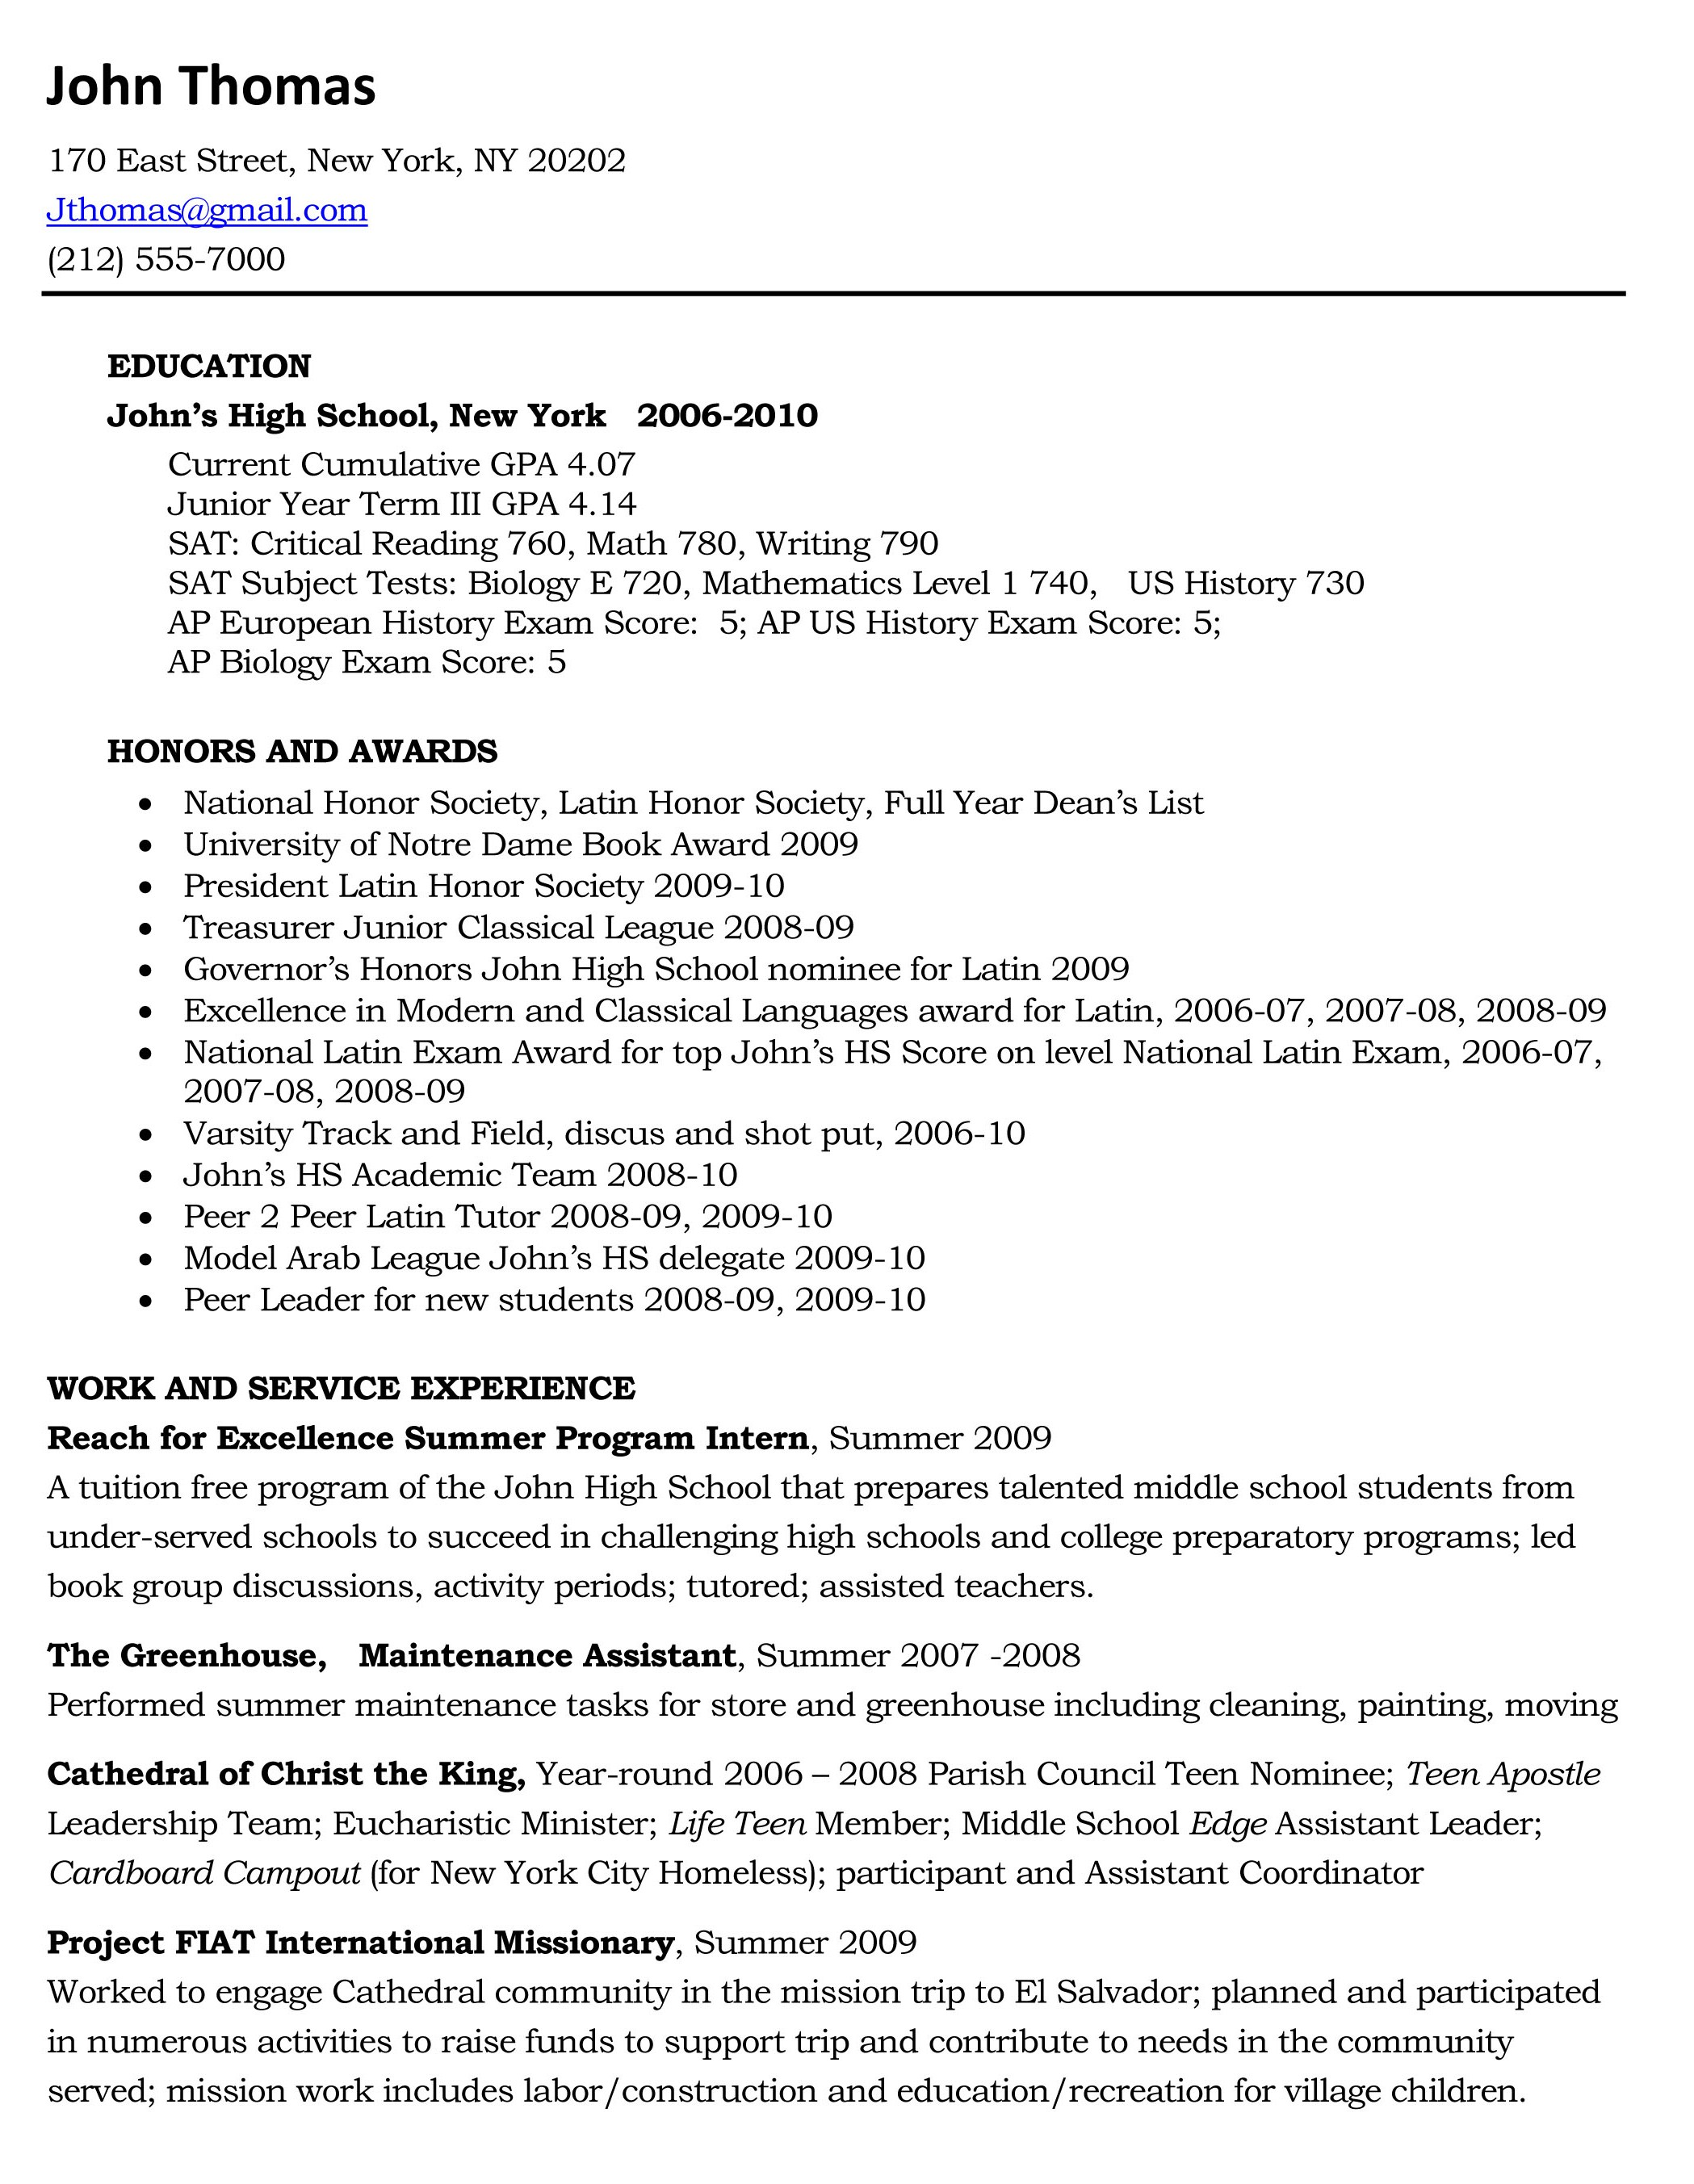 resume e jpg sample essay comparison